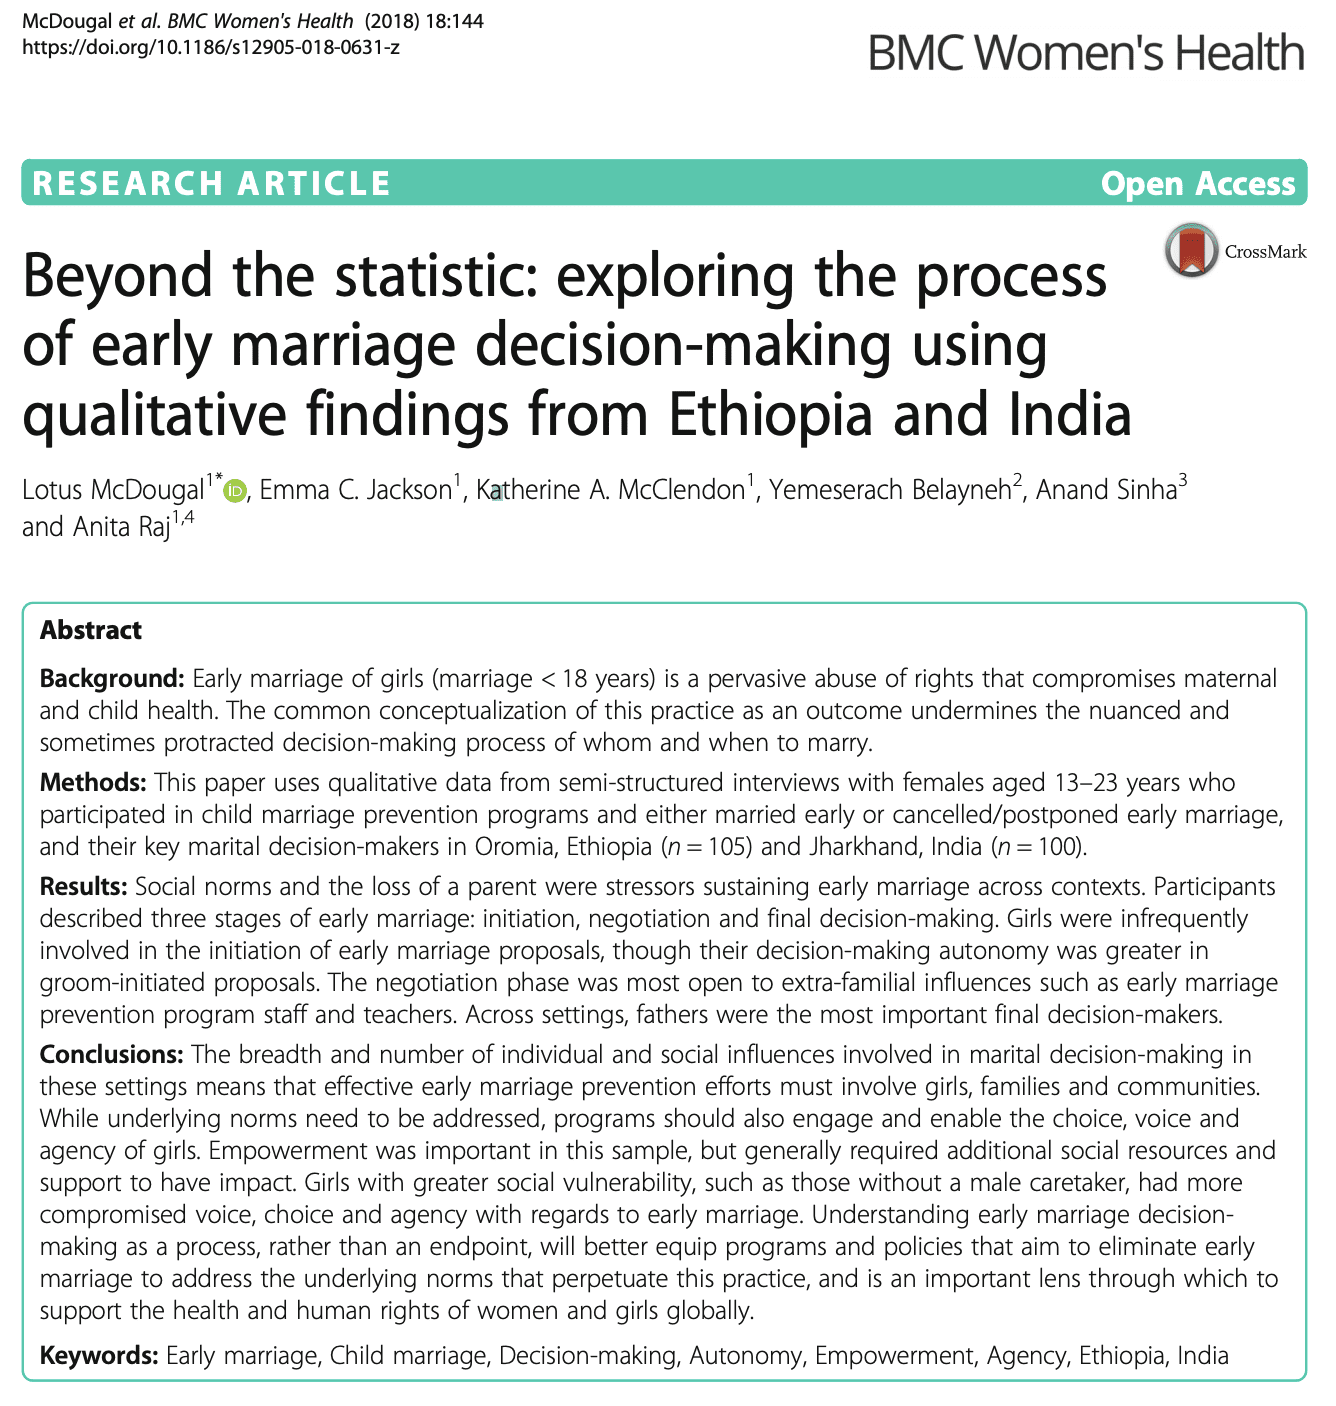 Beyond the statistic: exploring the process of early marriage decision-making using qualitative findings from Ethiopia and India